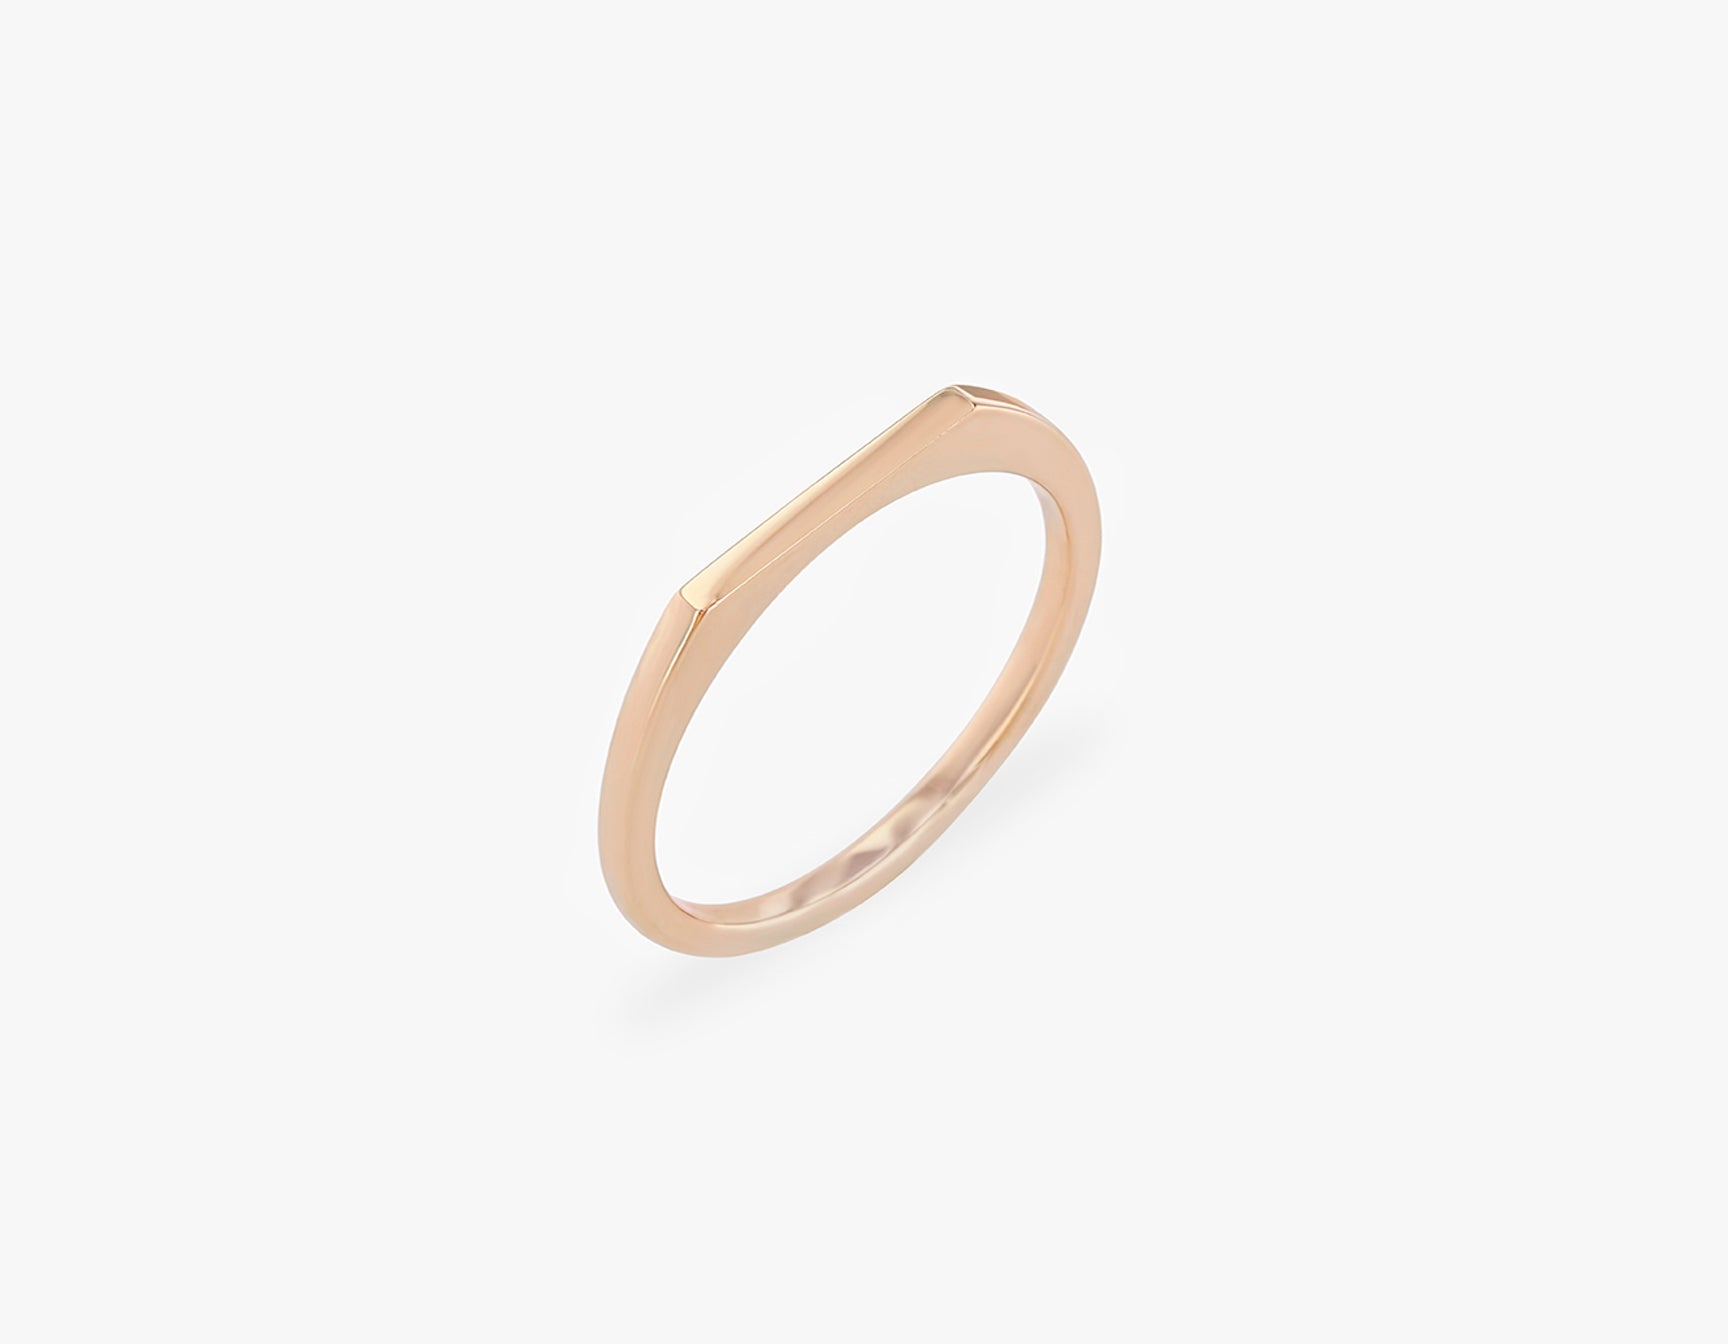 Vrai solid gold Line Ring, 14K Rose Gold